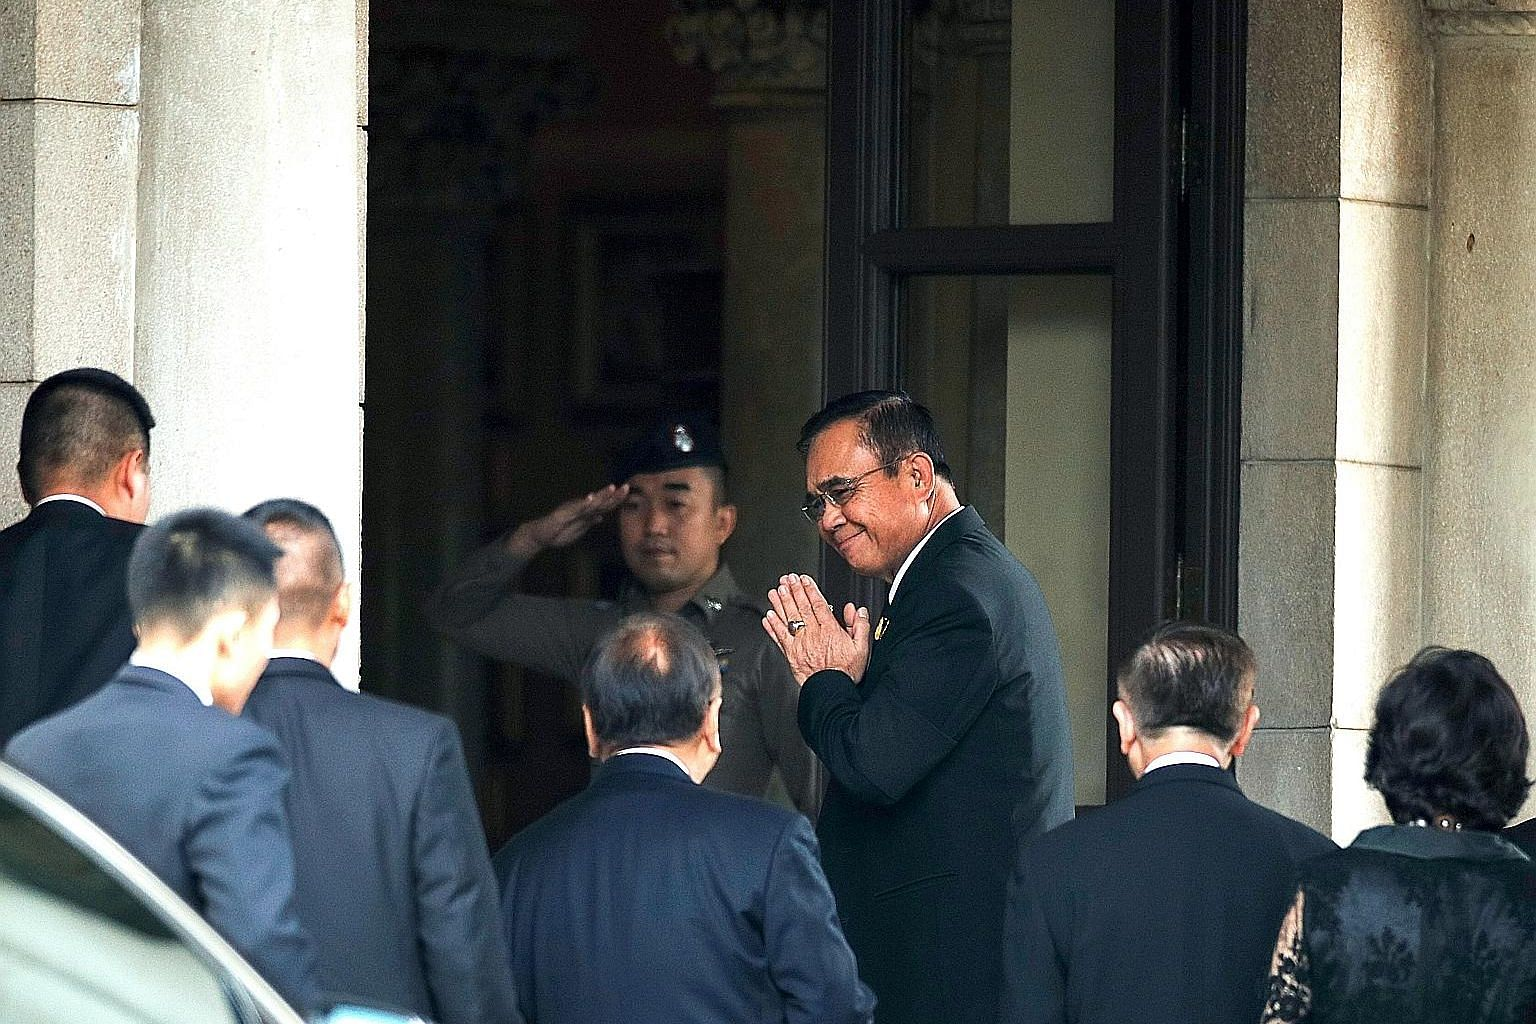 Thai Premier Prayut Chan-o-cha greeting officials at Government House yesterday in Bangkok. Mr Prayut's appointment as premier in Wednesday's joint sitting of Parliament was met with dissent by some coalition members, with one abstaining from the vot